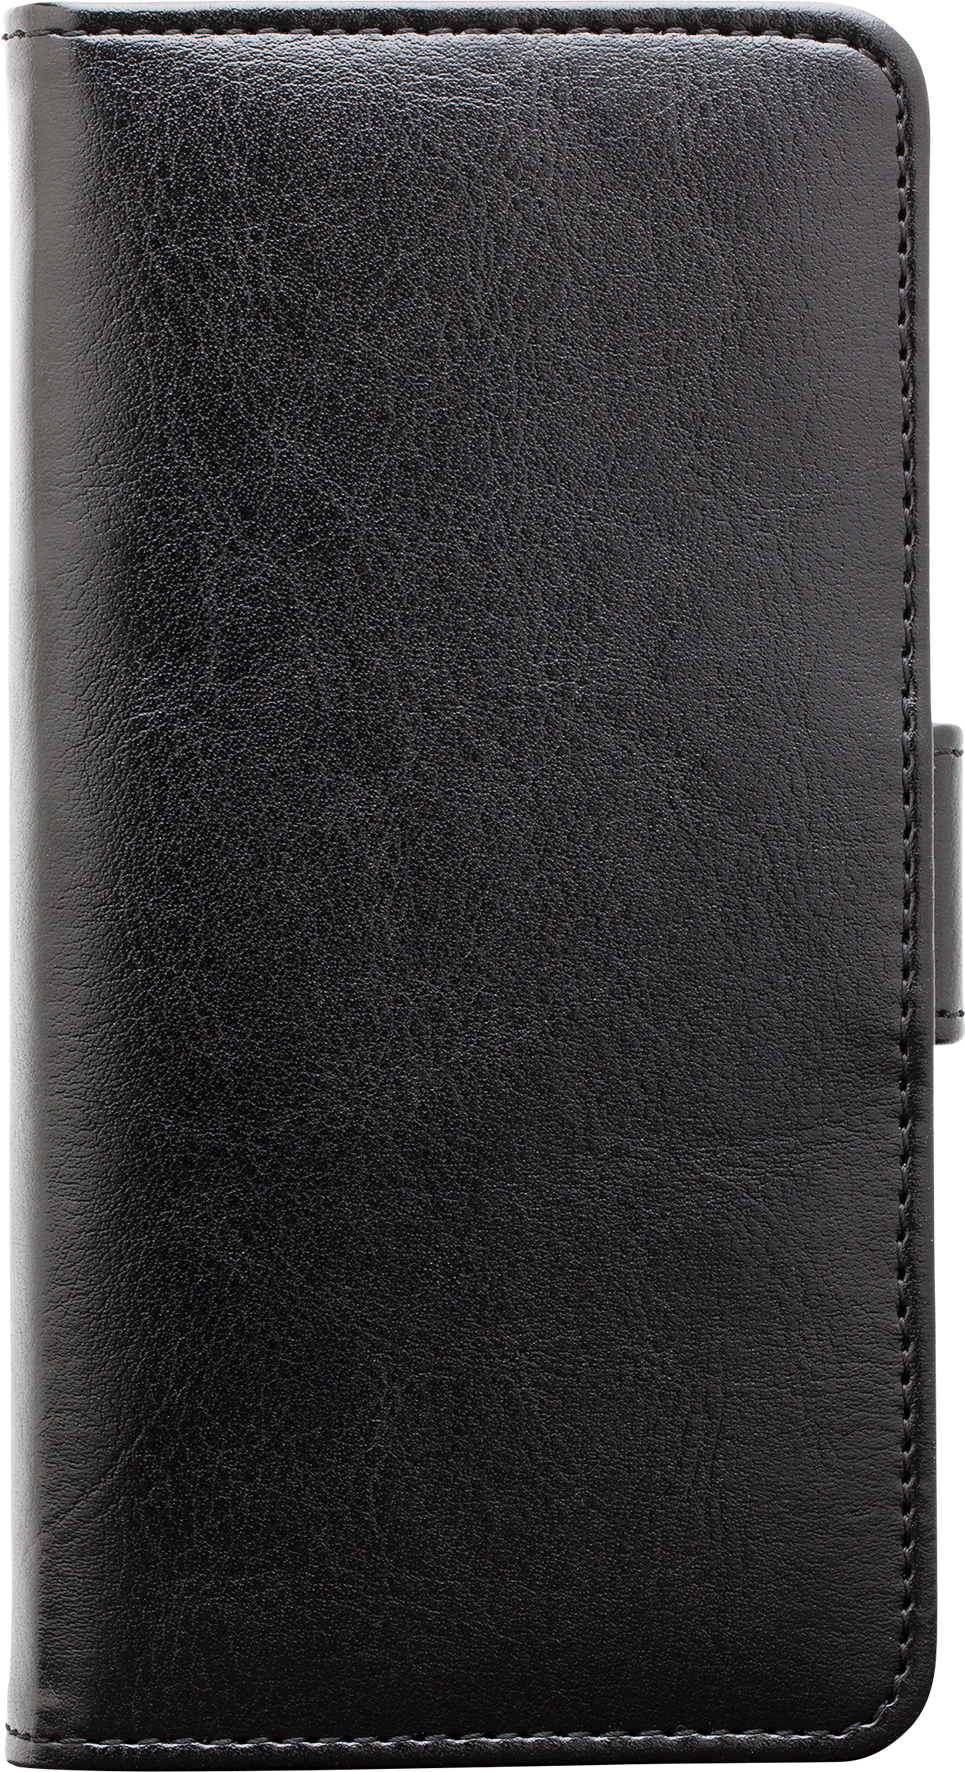 Läs mer om iZound Wallet Case HTC One M9 Black